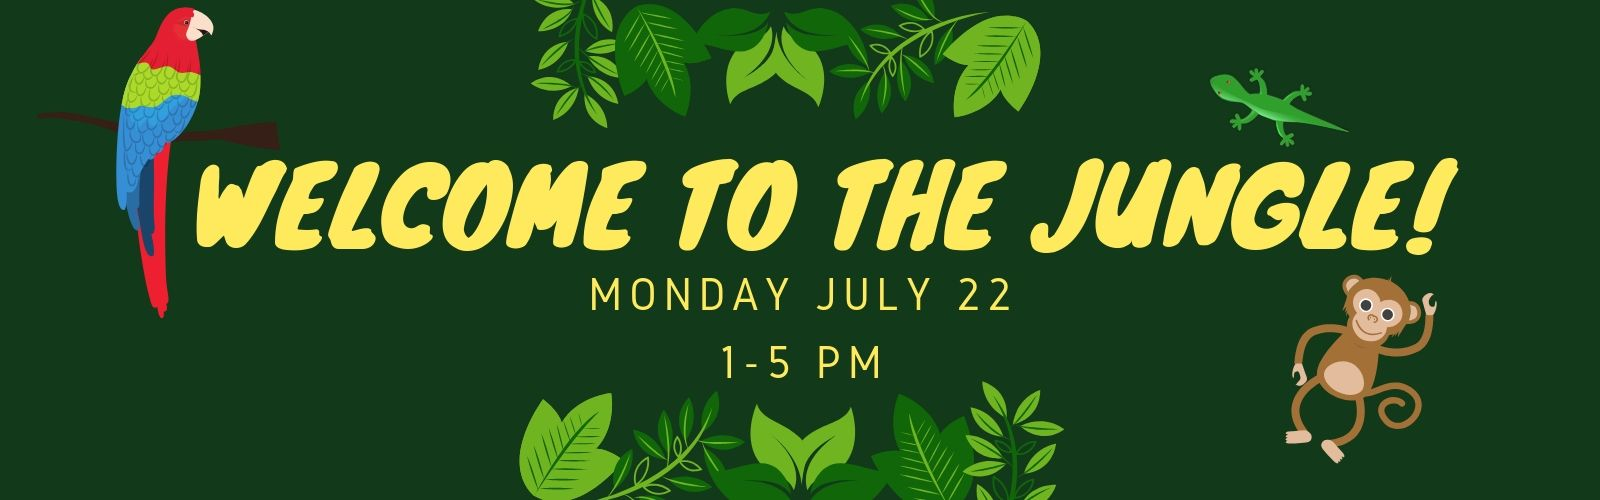 Welcome to the Jungle, Monday July 22nd from 1 to 5 pm